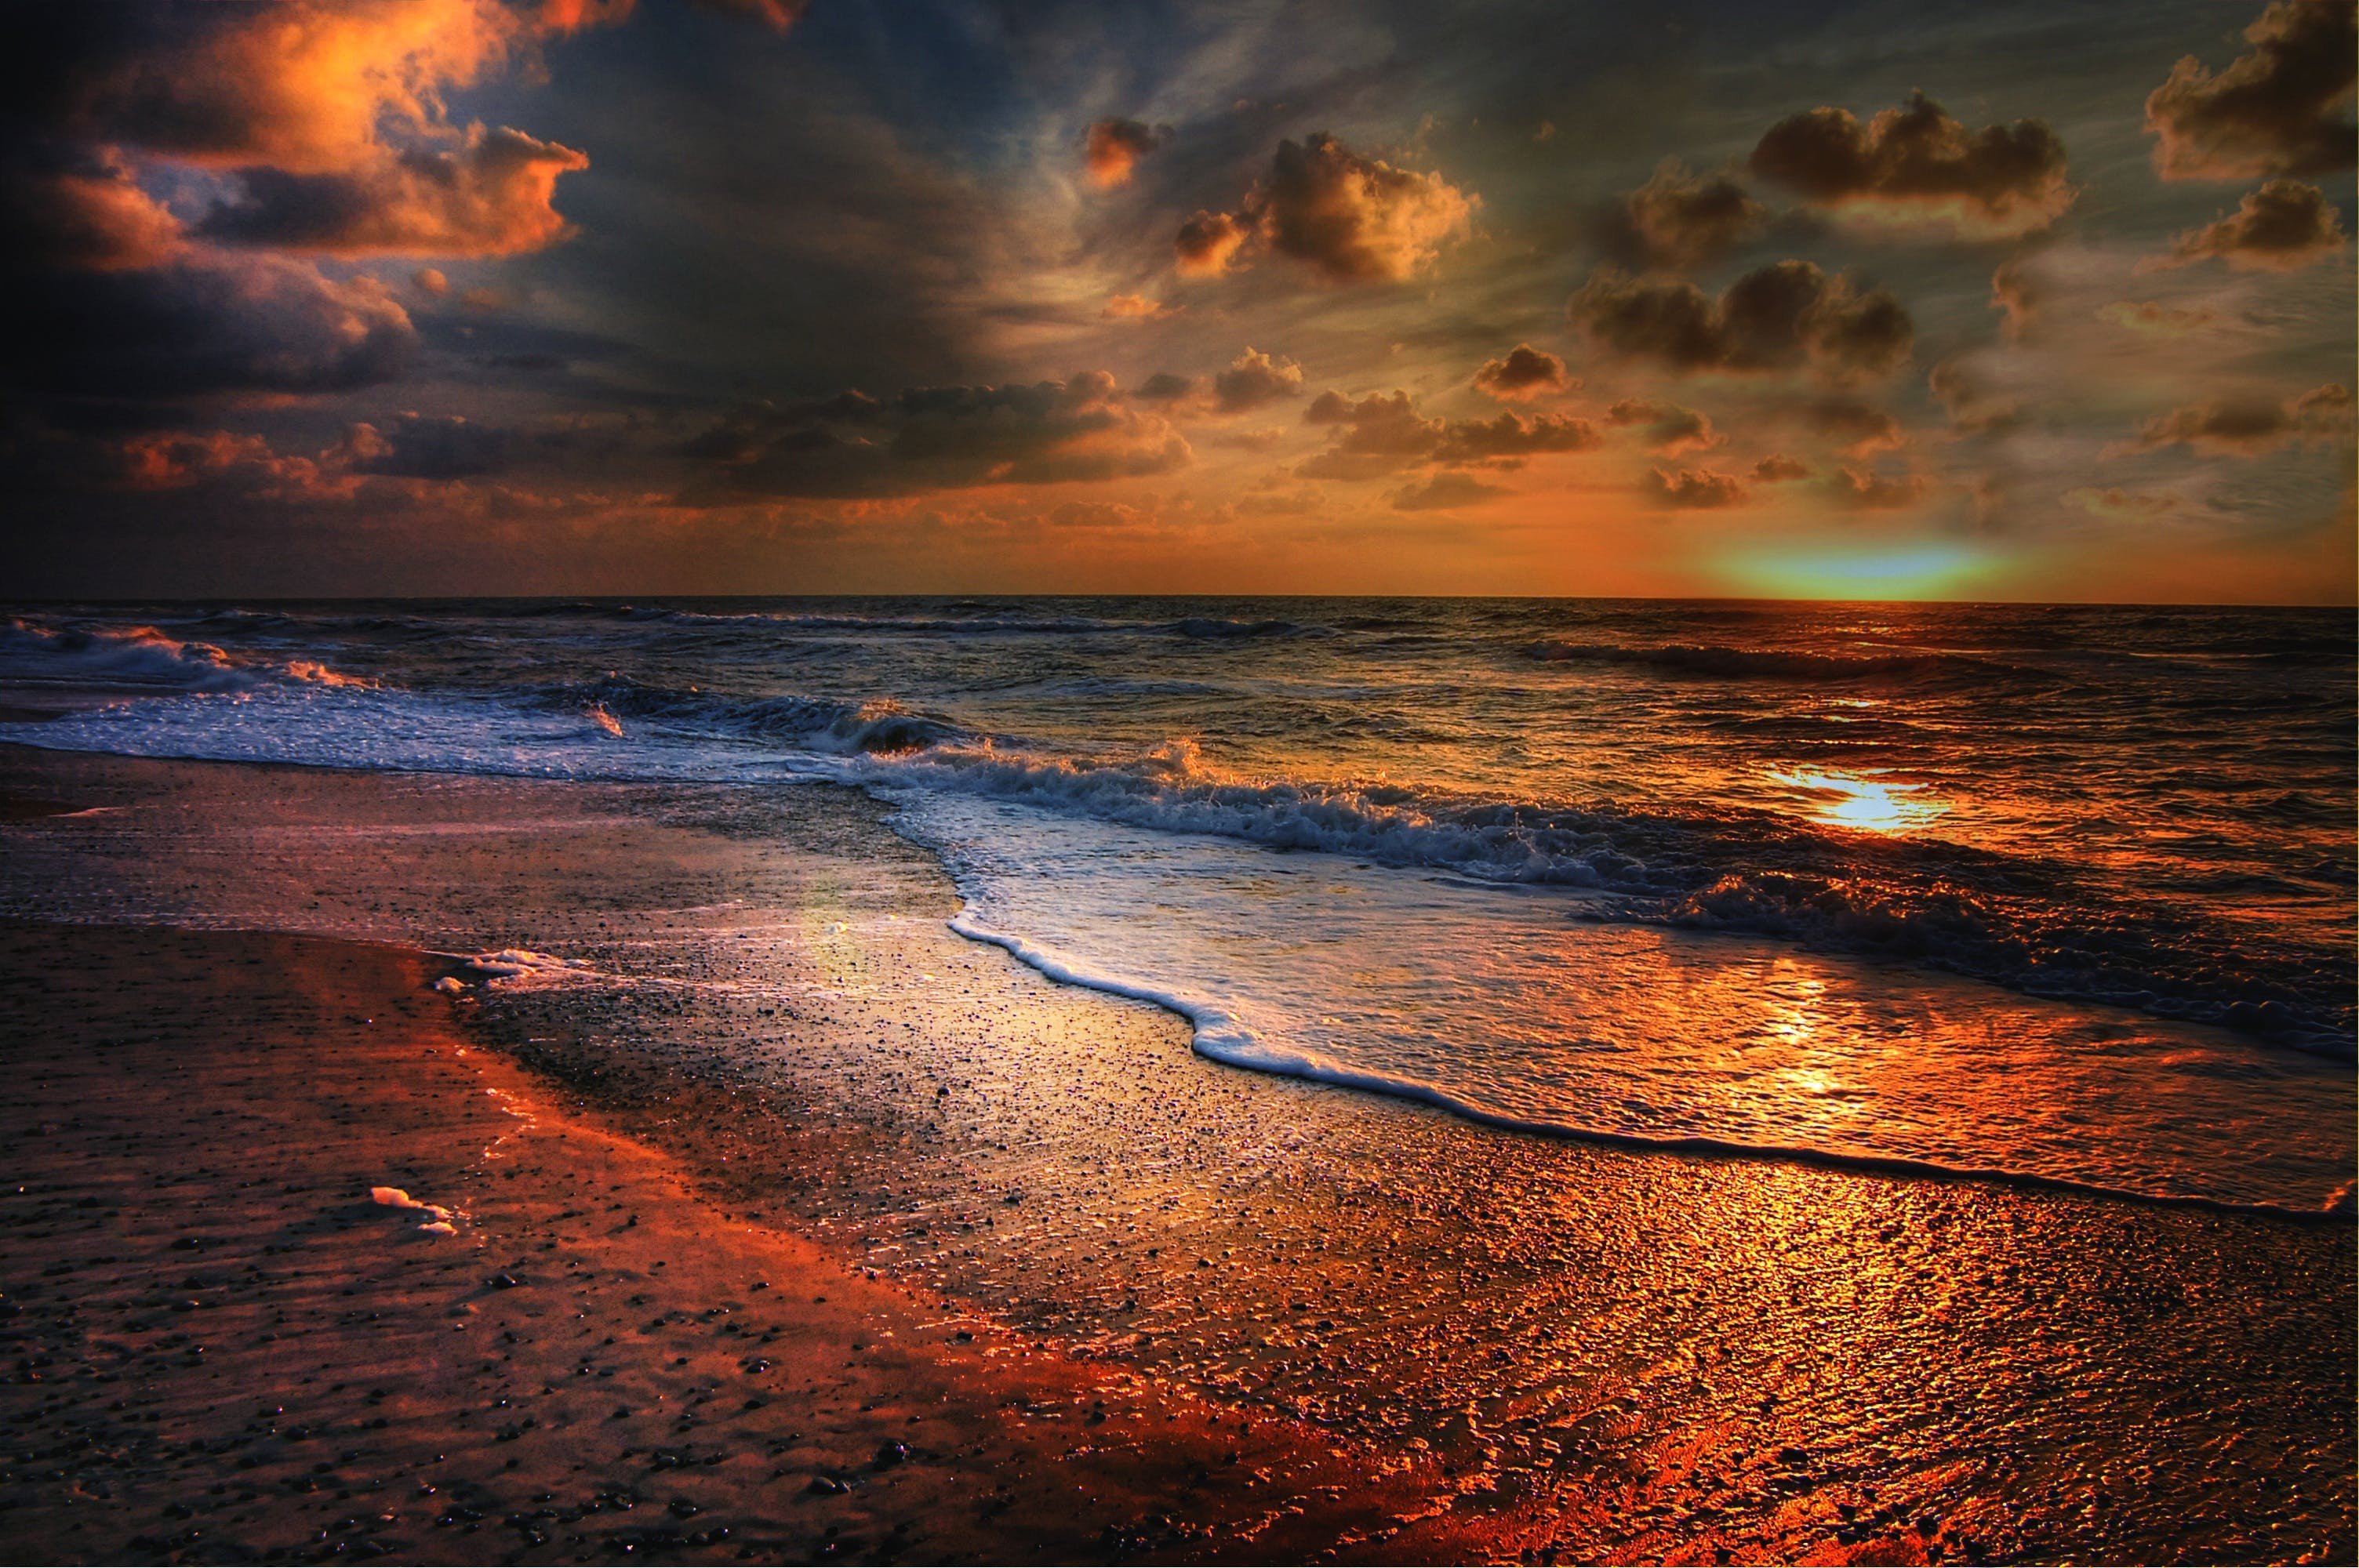 Sea during Sunset